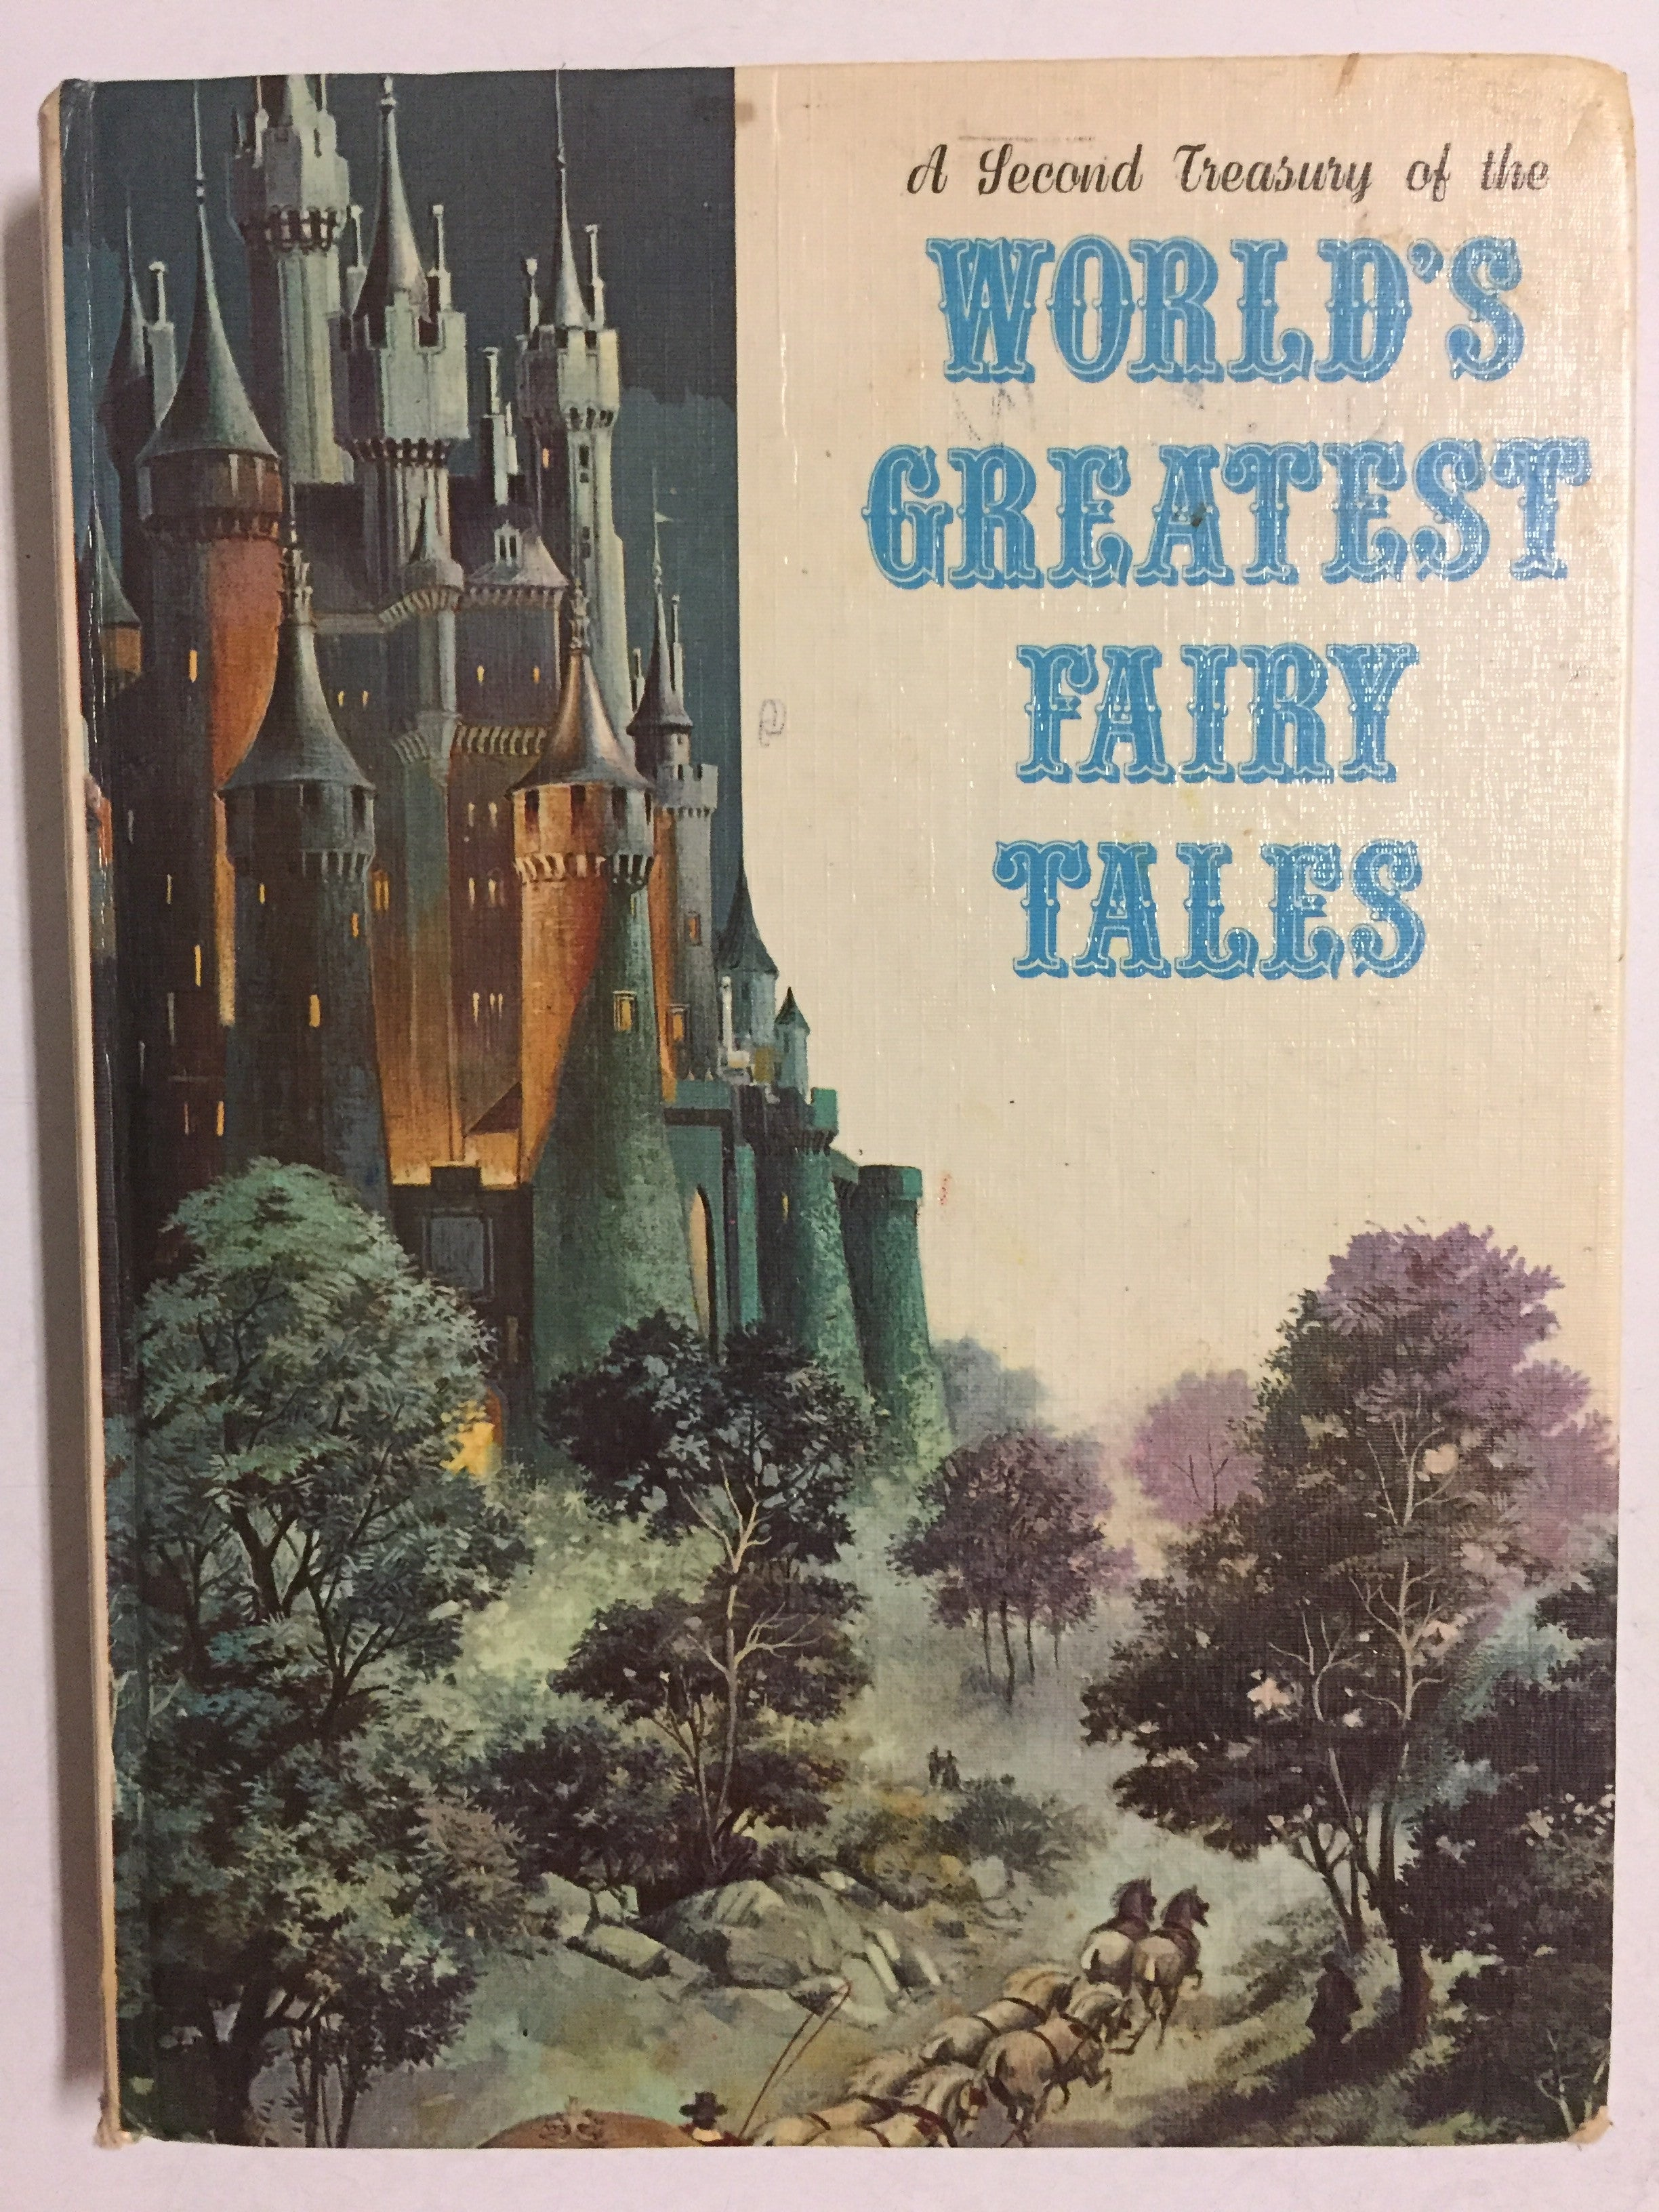 A Secondary Treasury of the World's Greatest Fairy Tales - Slick Cat Books